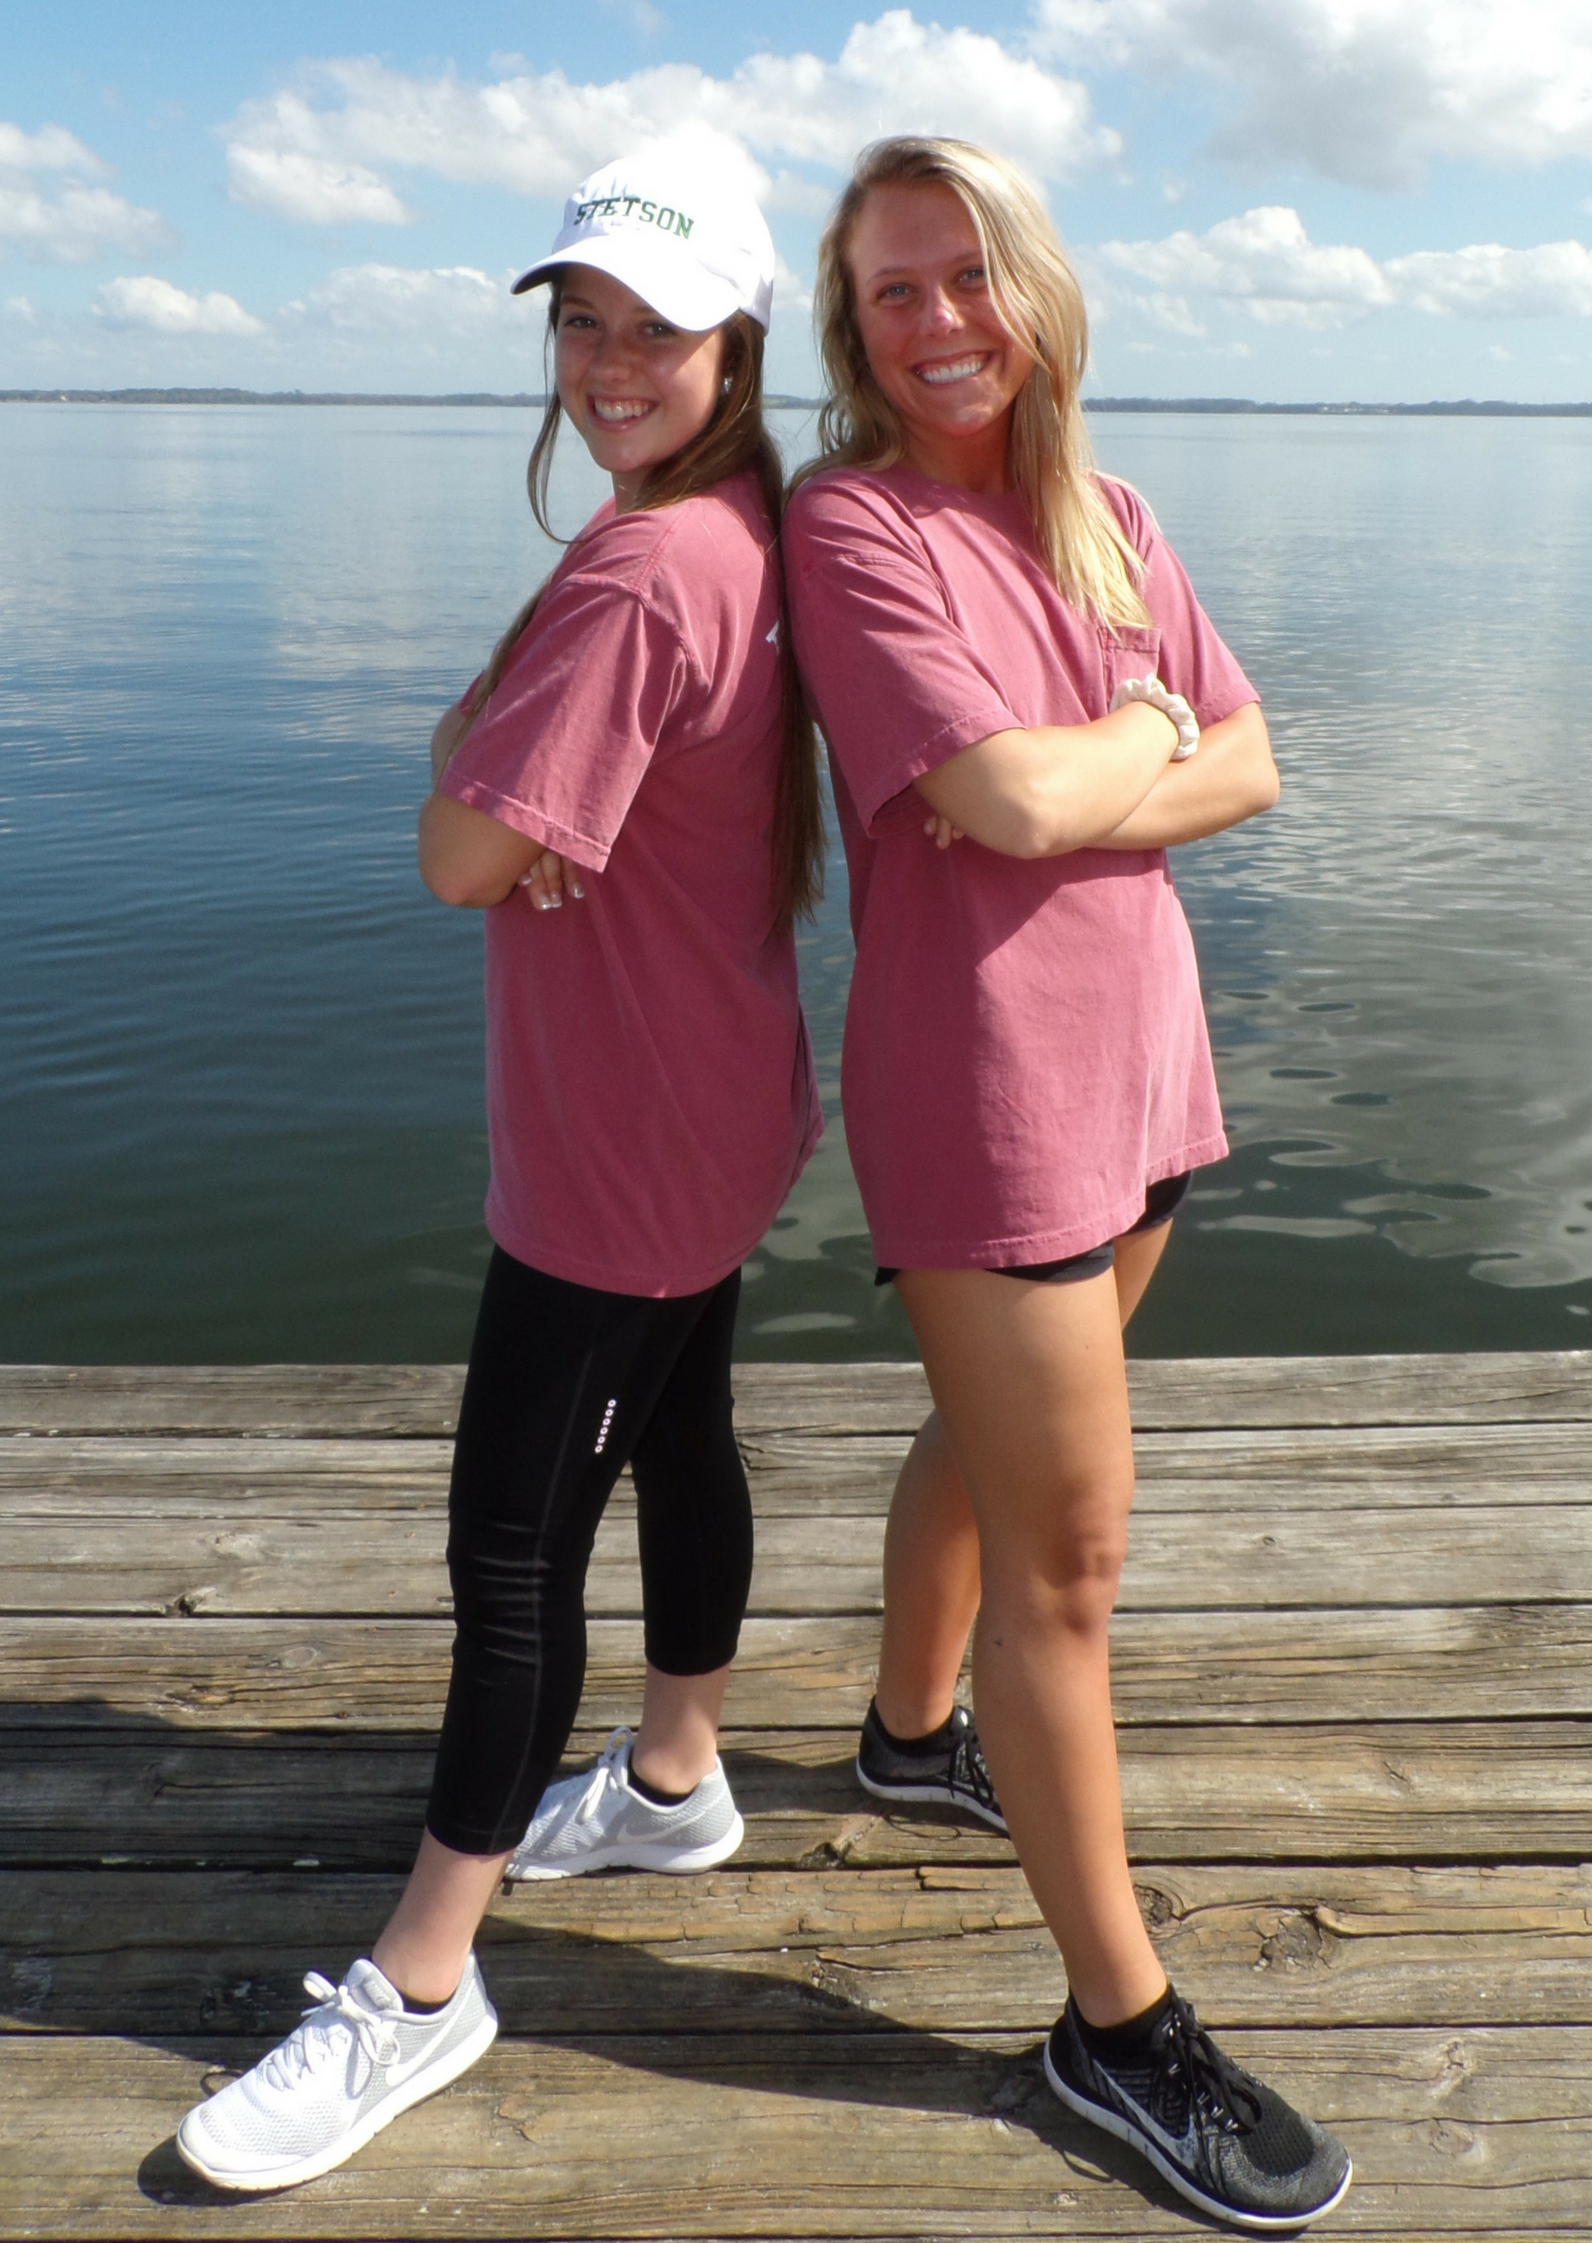 Brittani Smith and Ashley Koletsos standing back to back on a dock with a large lake behind them